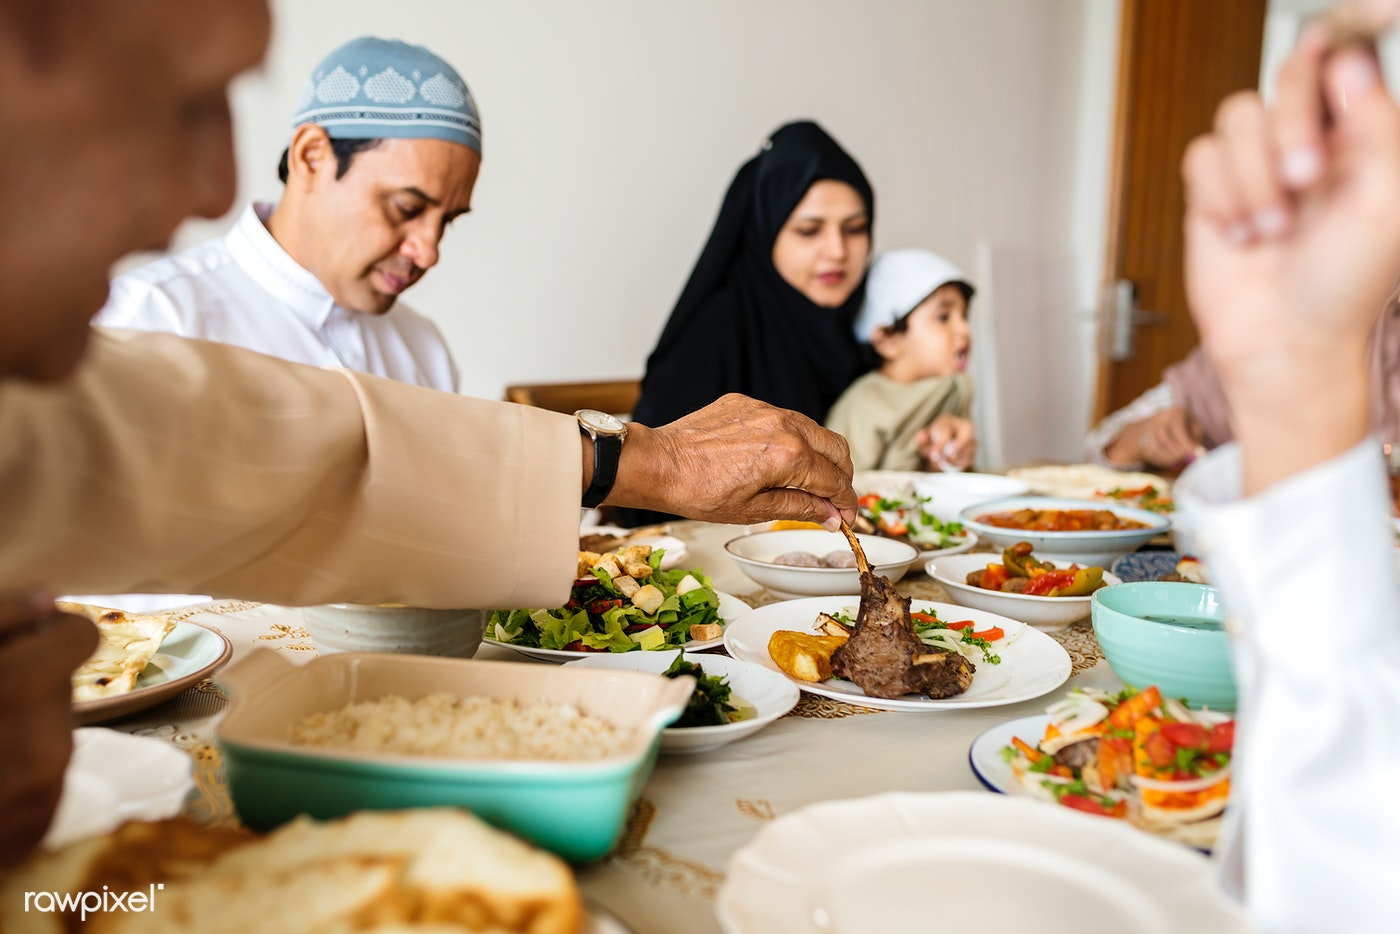 Happy Muslim family eating at home | Royalty free photo - 425879